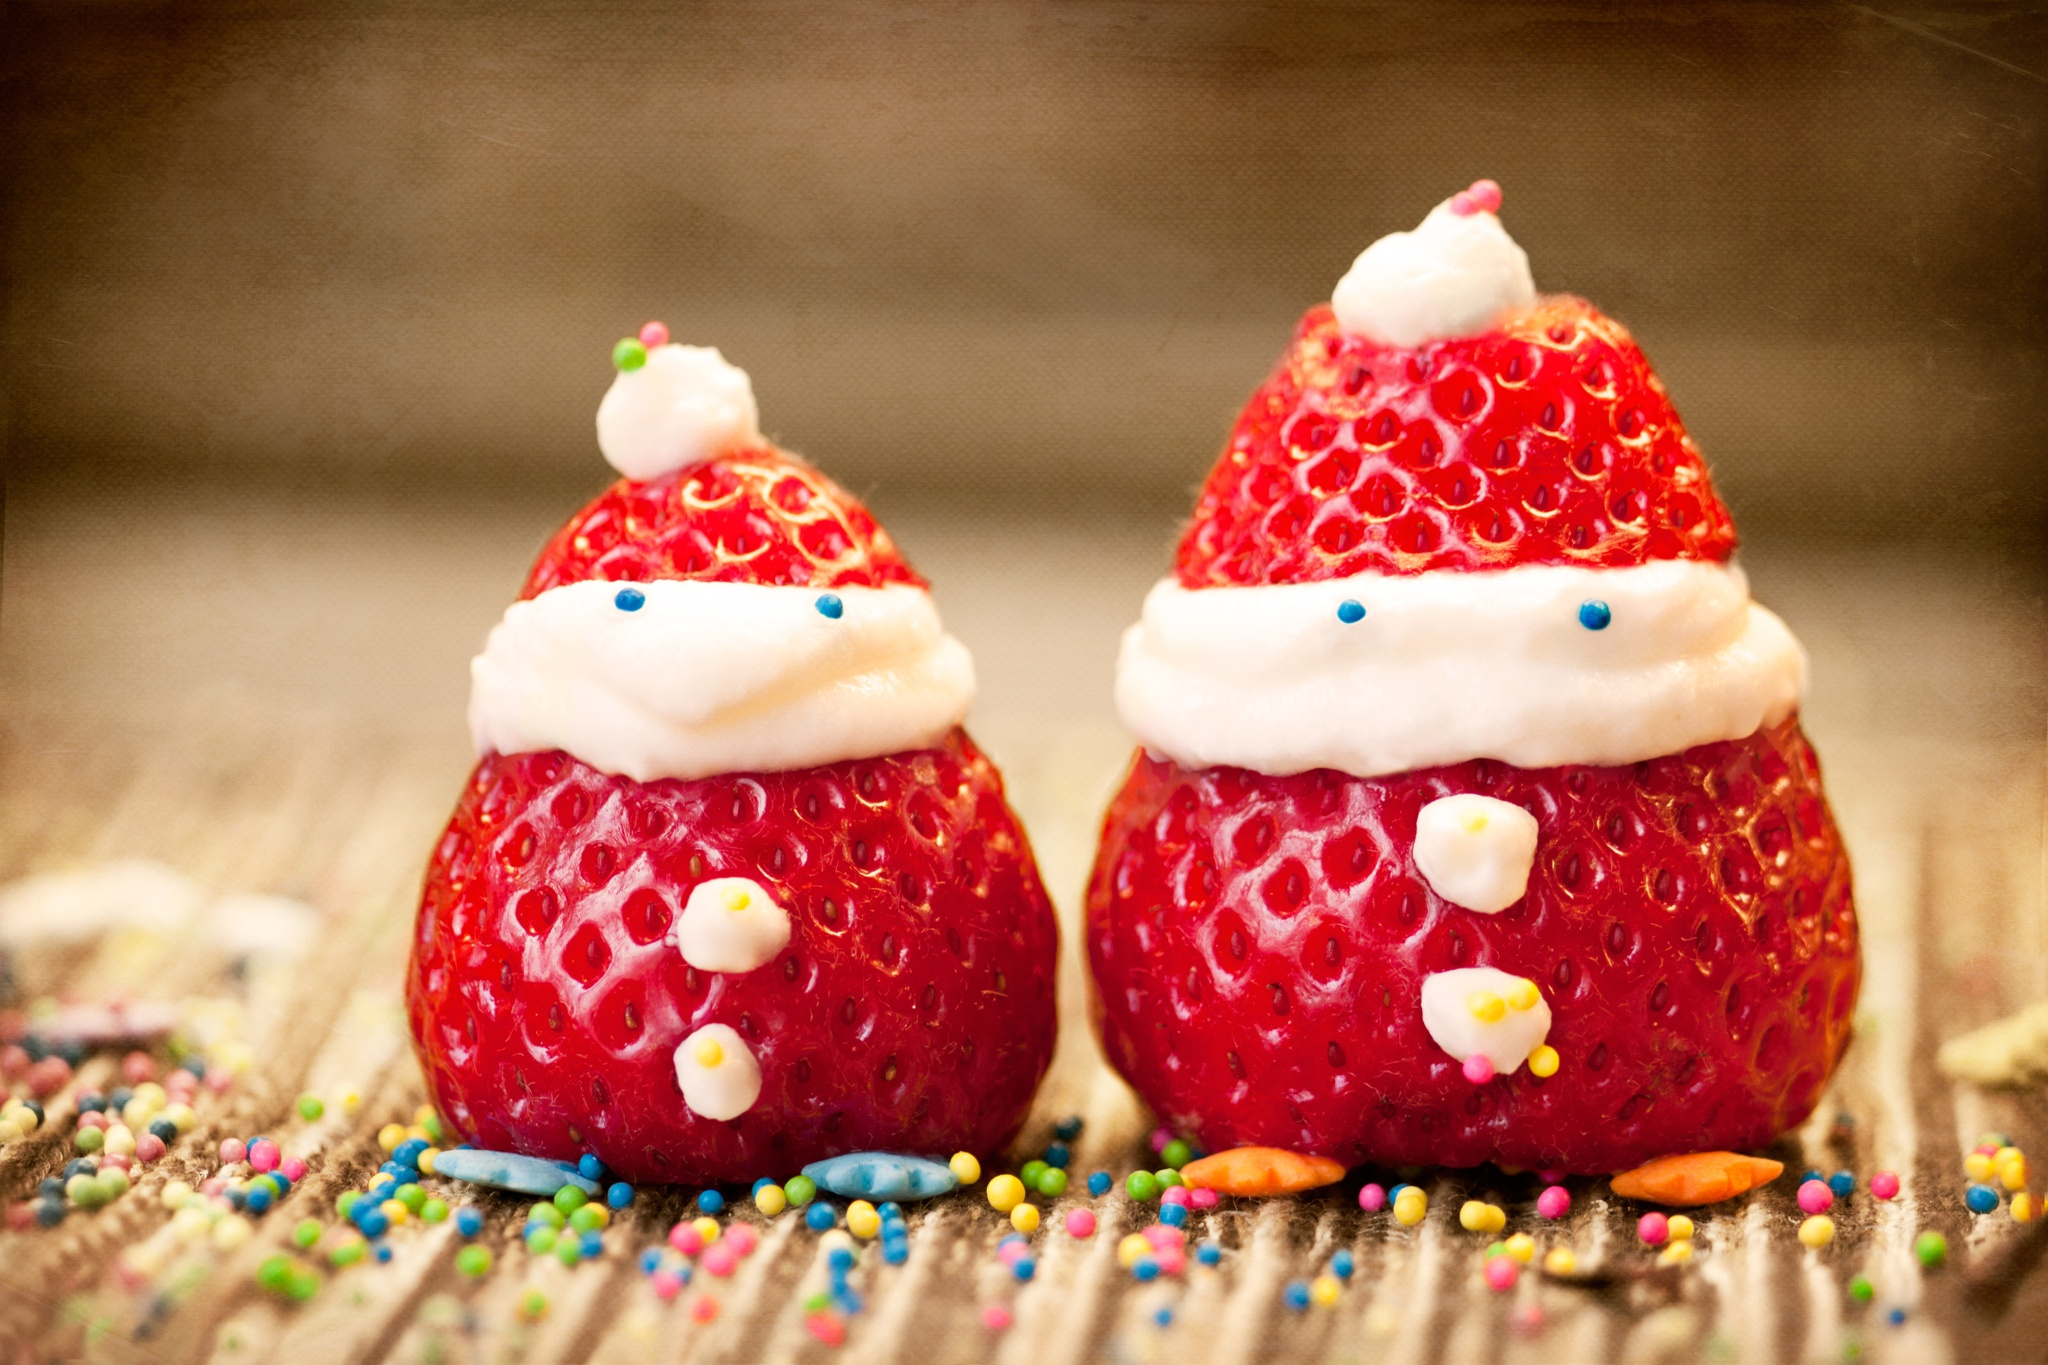 Weekly Contest Winners: 18 Beautifully Delicious Festive Food Photos